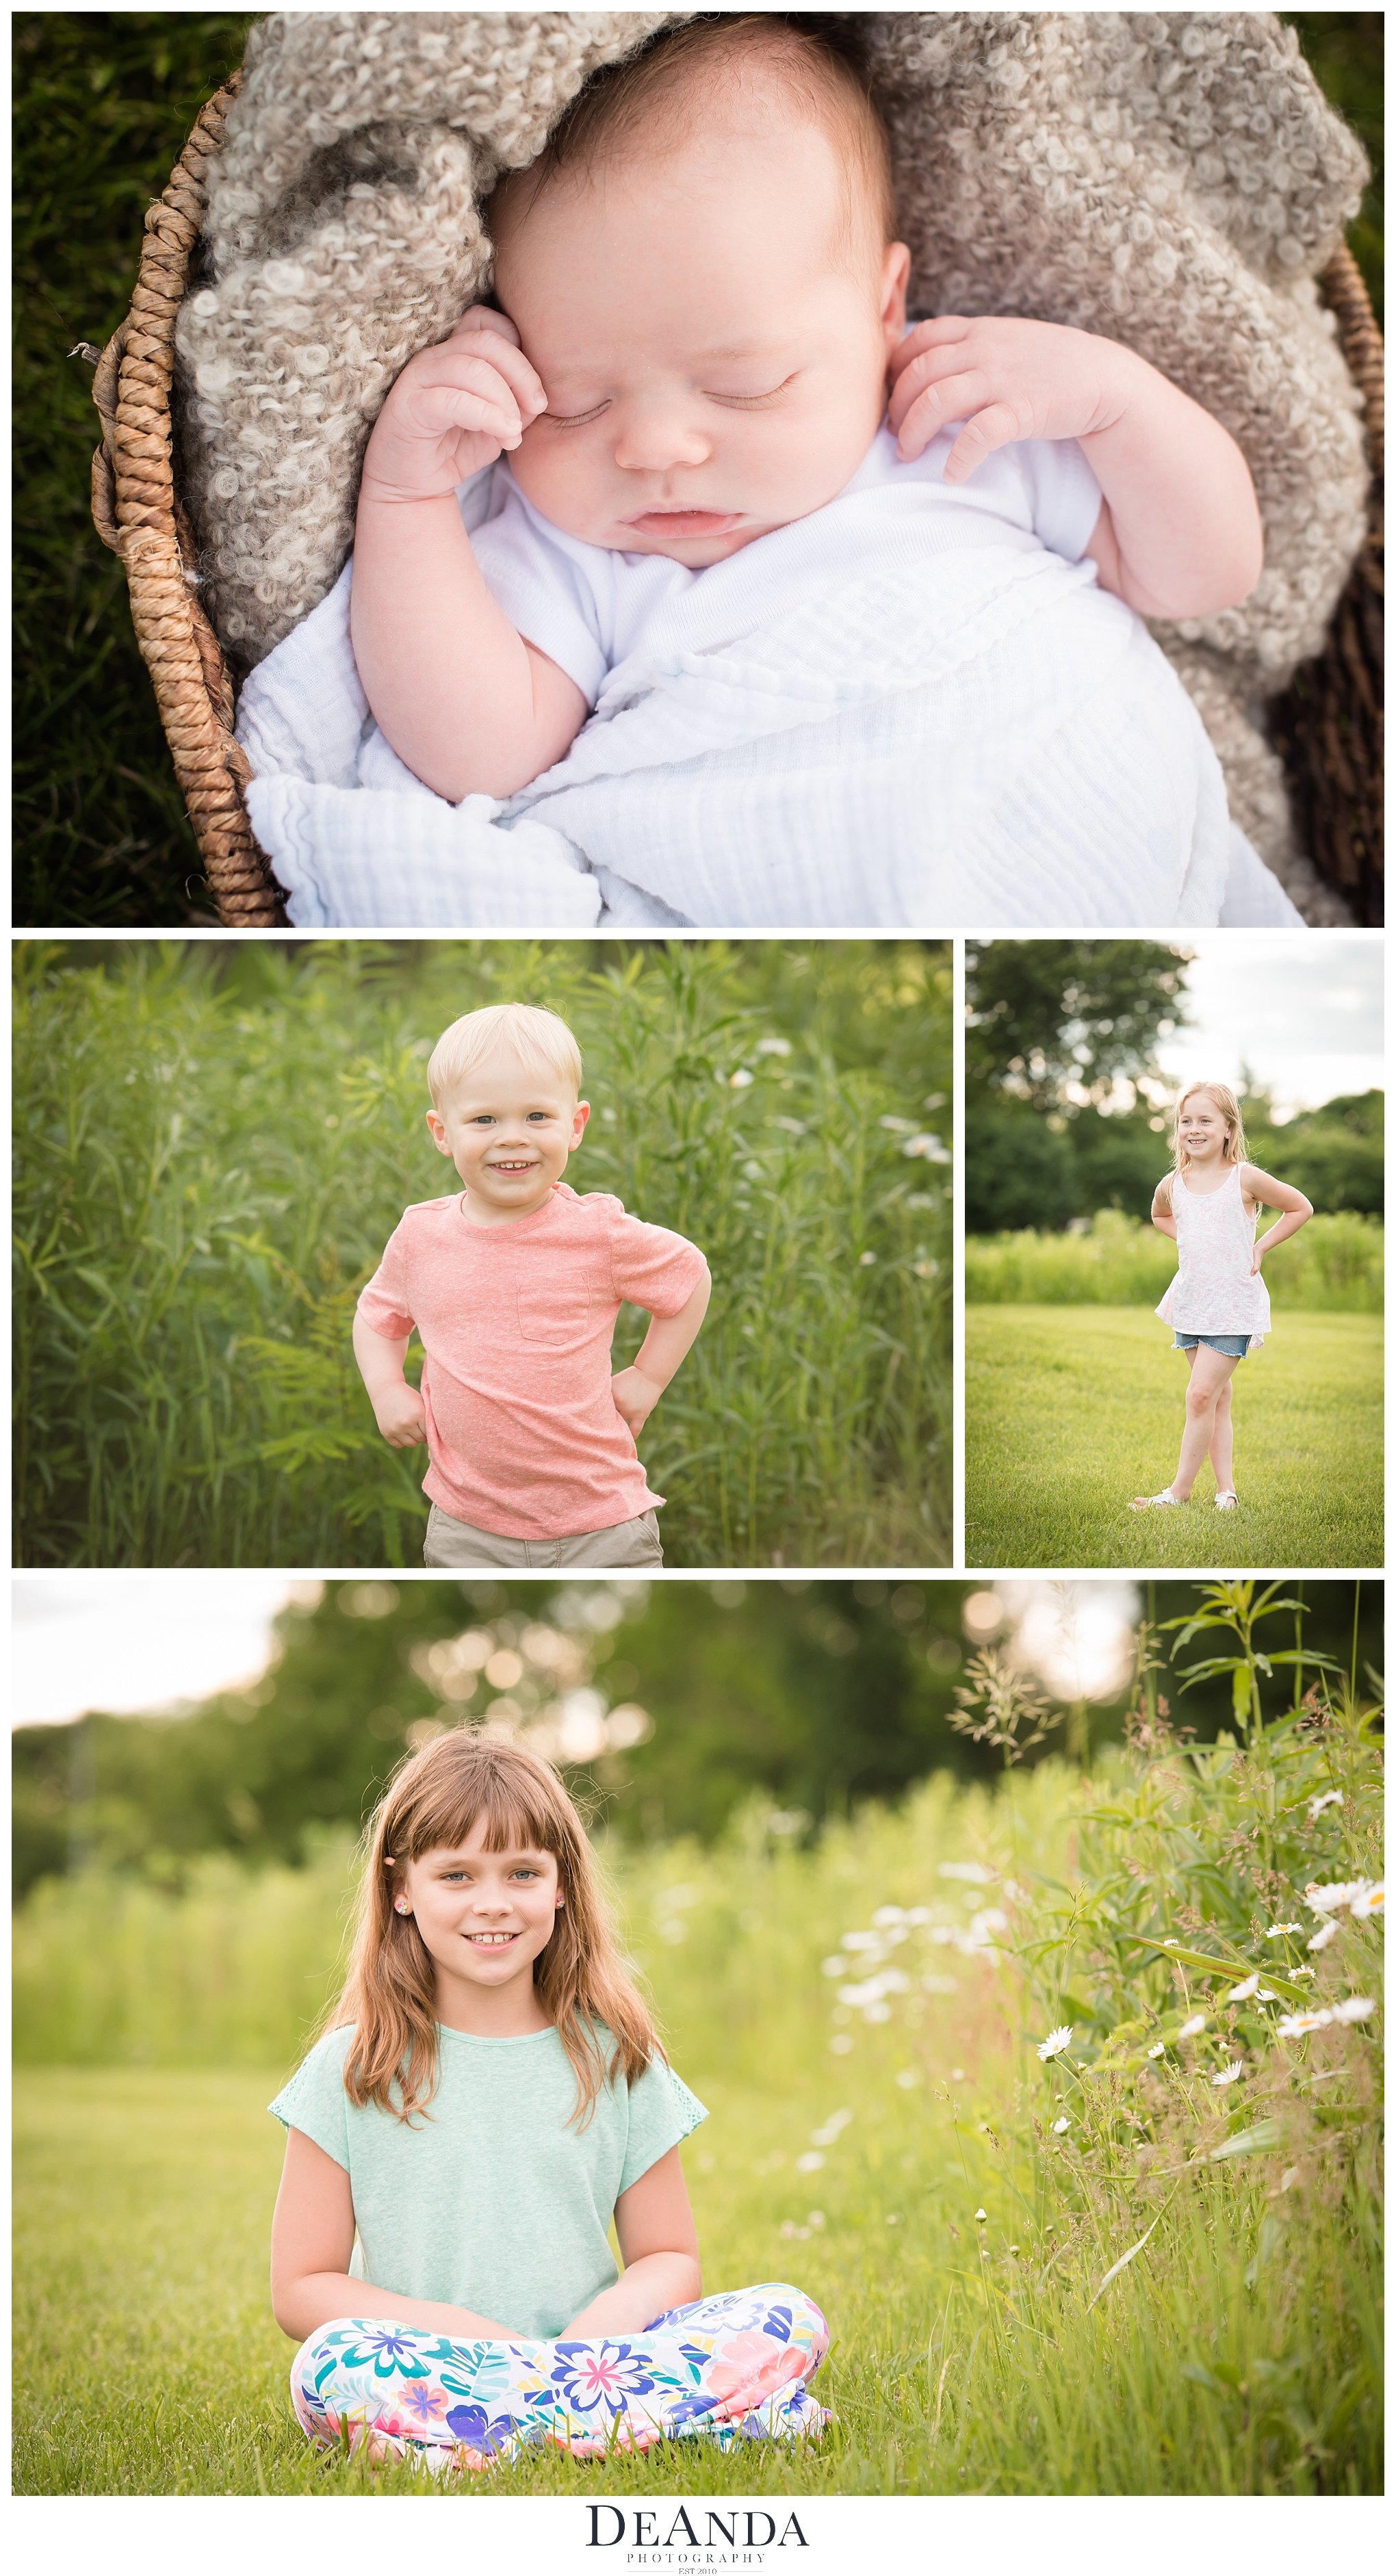 Deer Park Family Photography